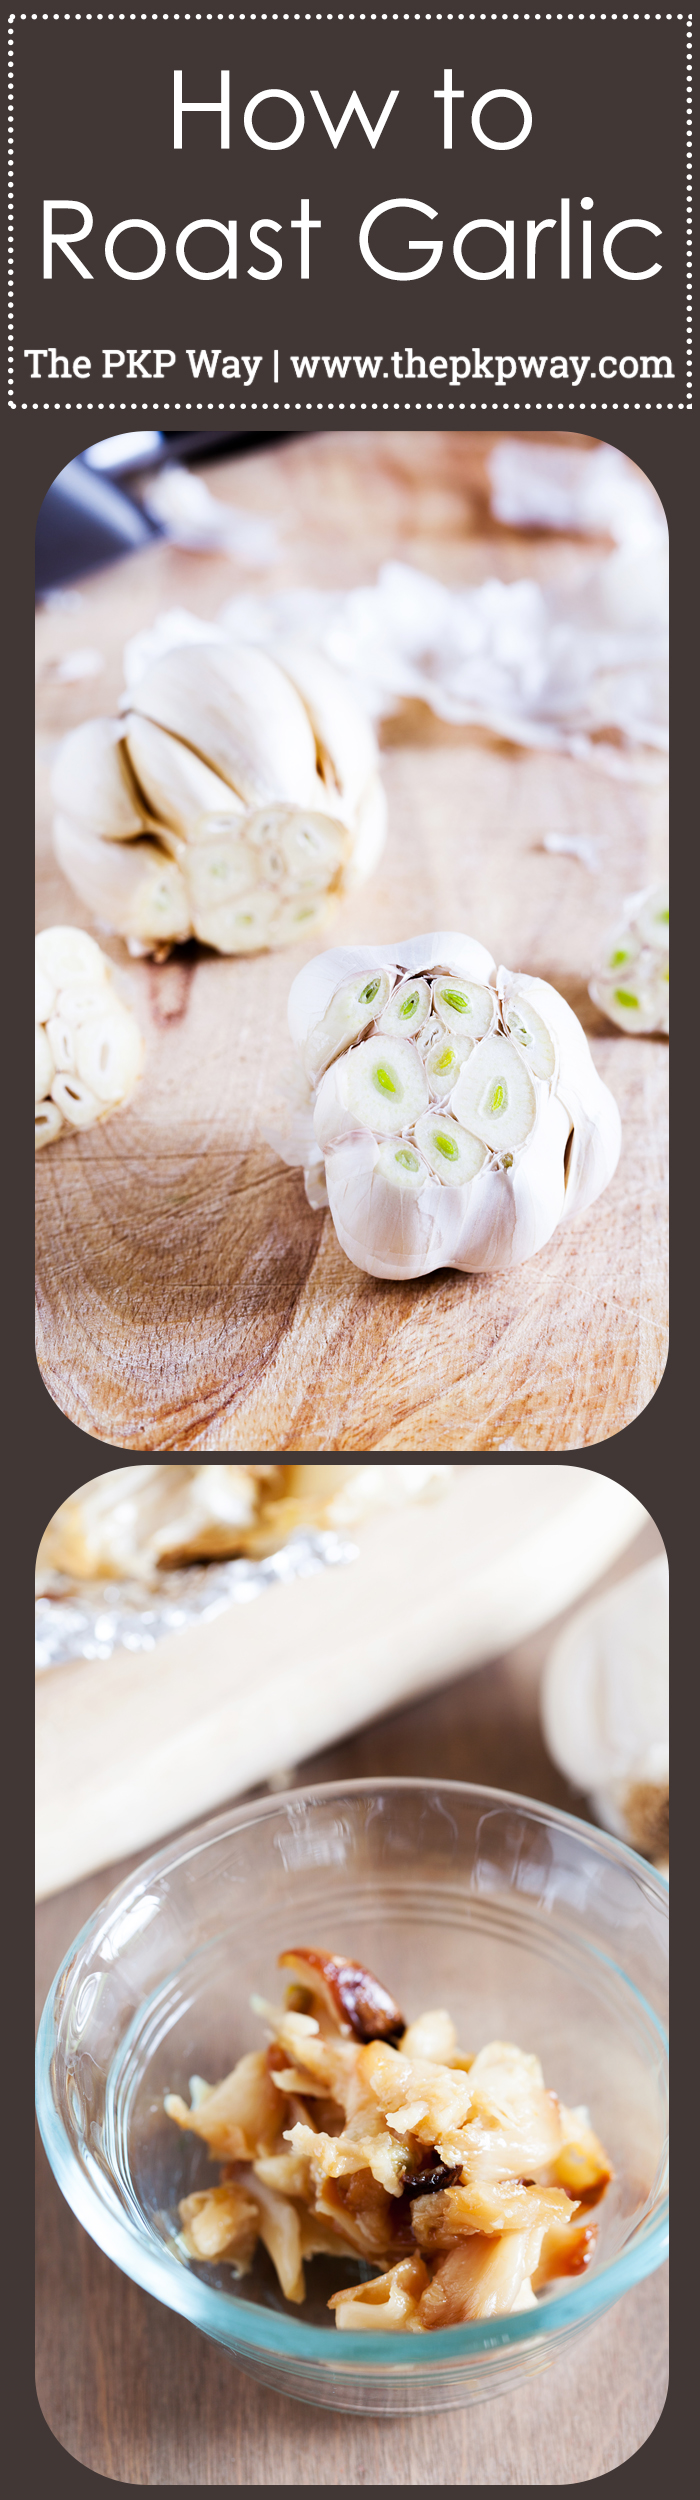 Learn How to Roast Garlic with step-by-step photos and set your ...